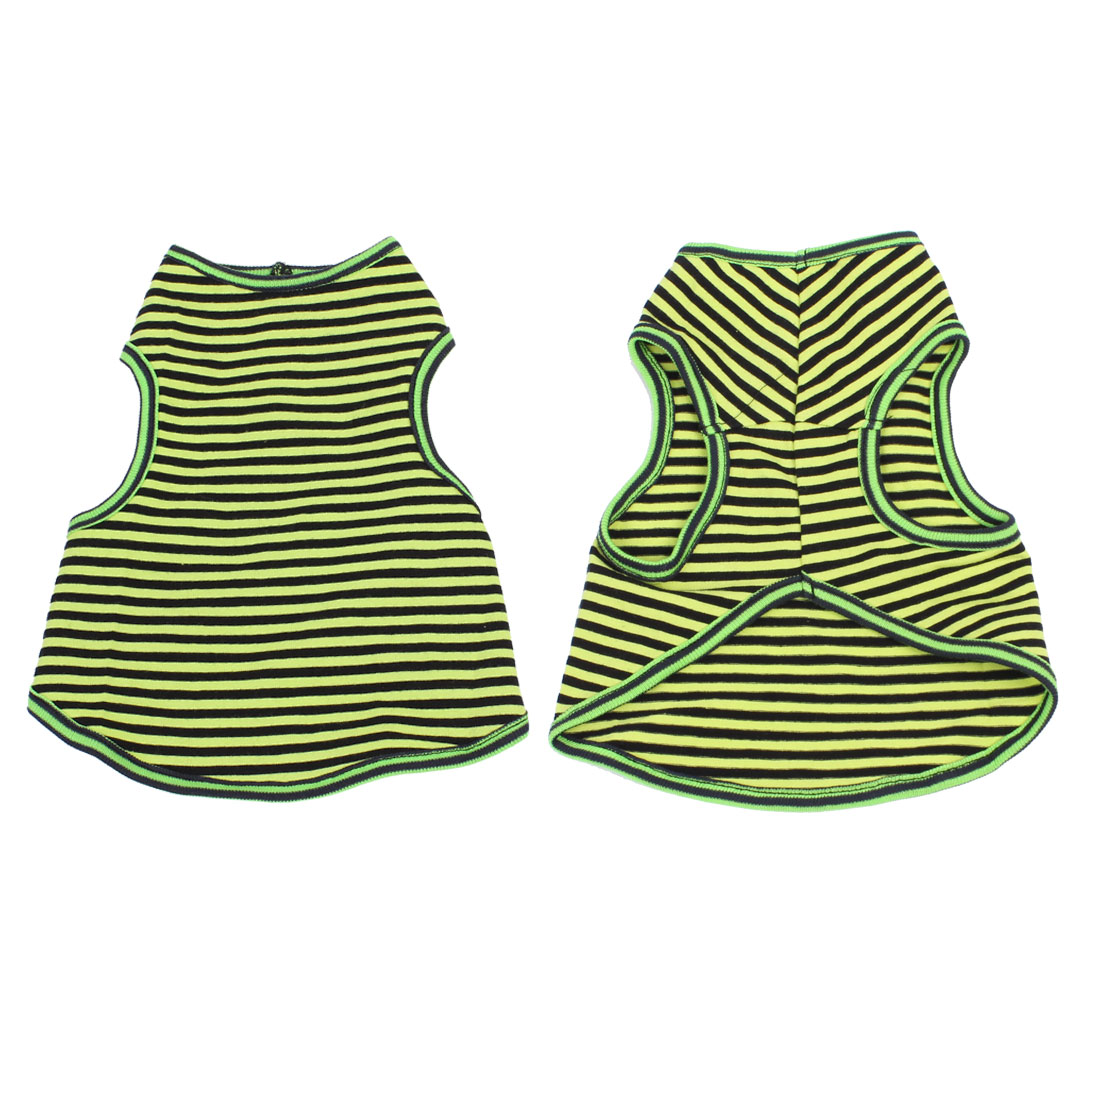 Striped Printed Doggy Pet Clothing Dog Tank Top Summer Shirt Blue White L